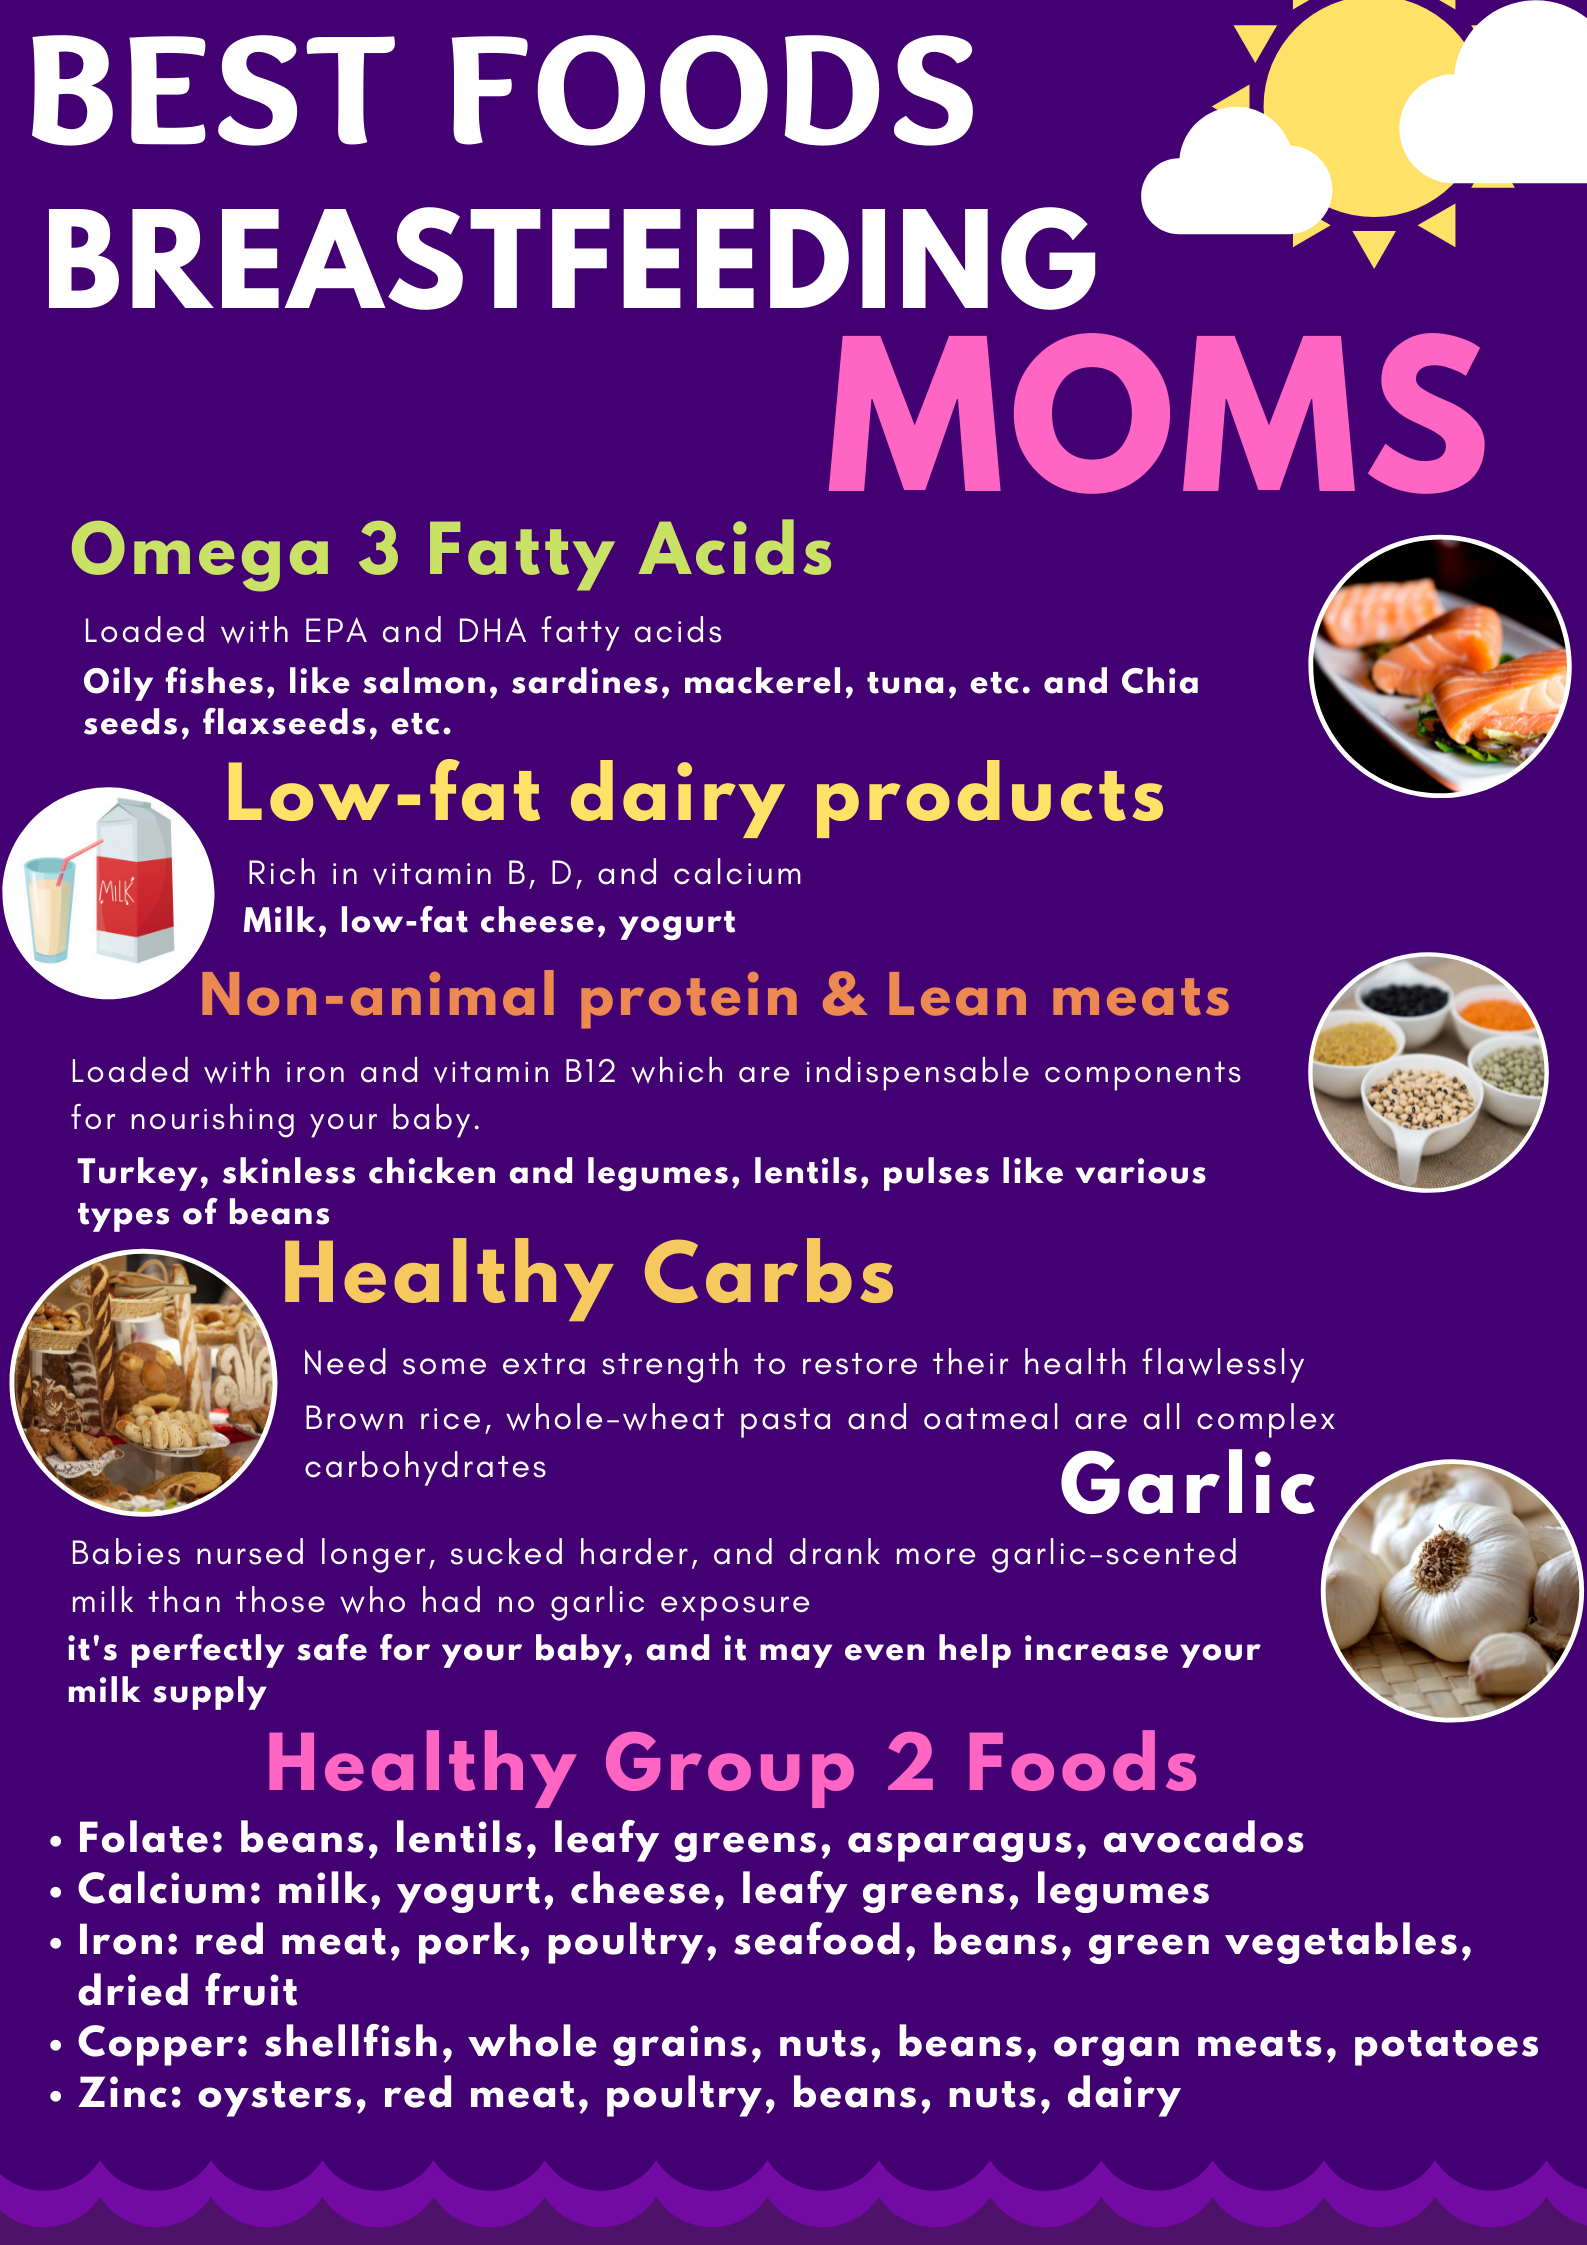 Best Foods and Diet Ideas for Breastfeeding New Moms